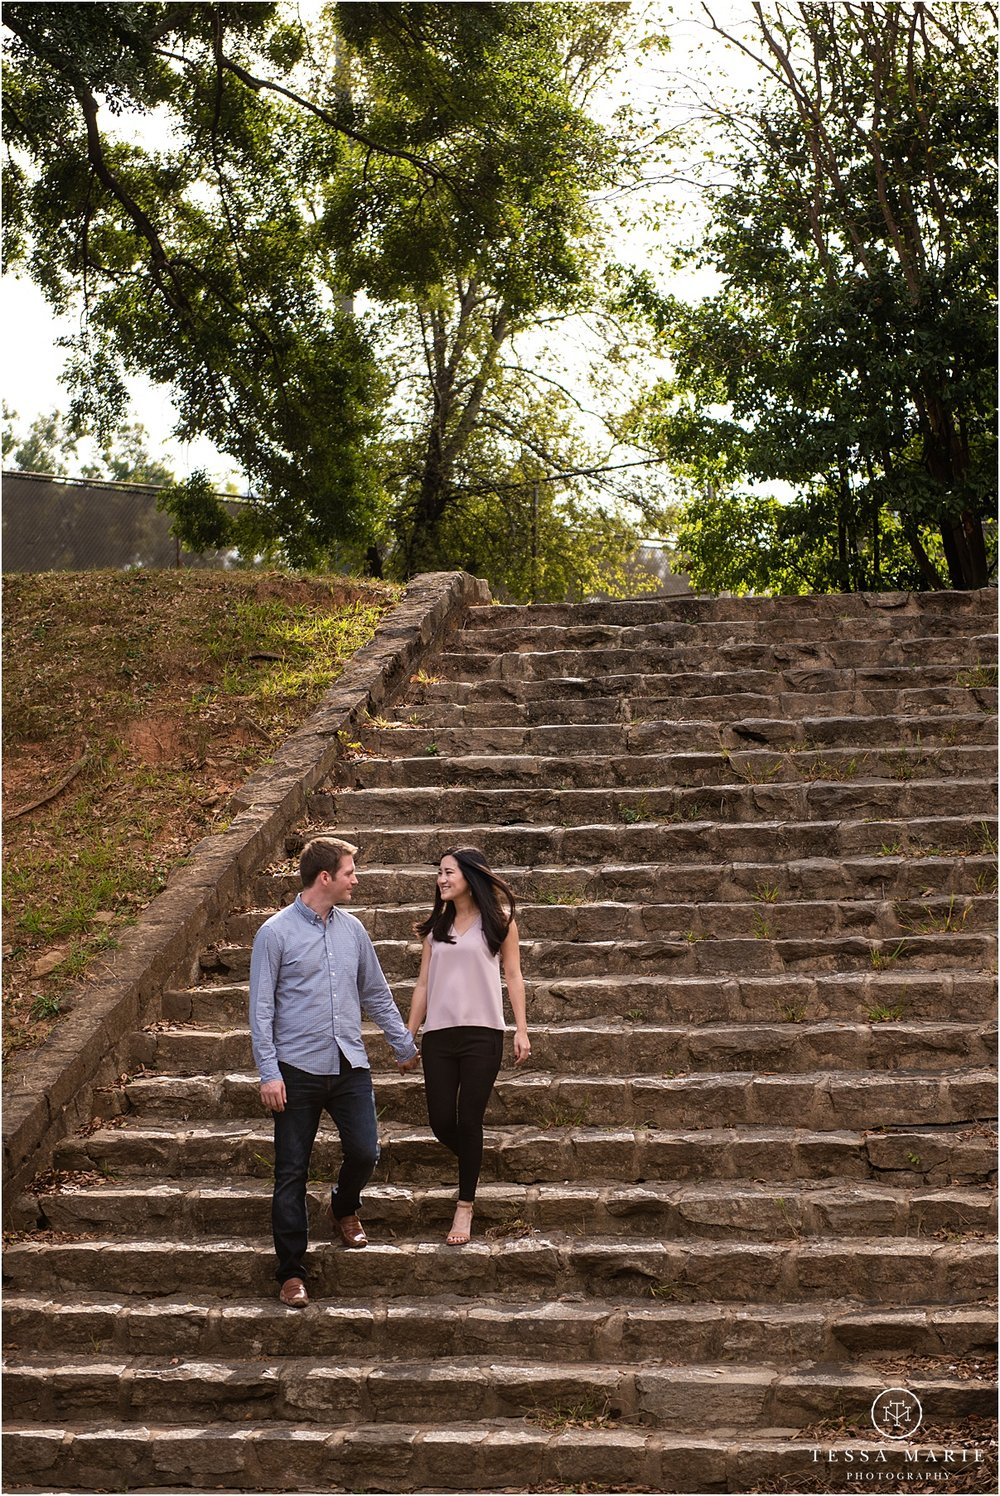 Tessa_marie_photography_wedding_photographer_engagement_pictures_piedmont_park_0086.jpg